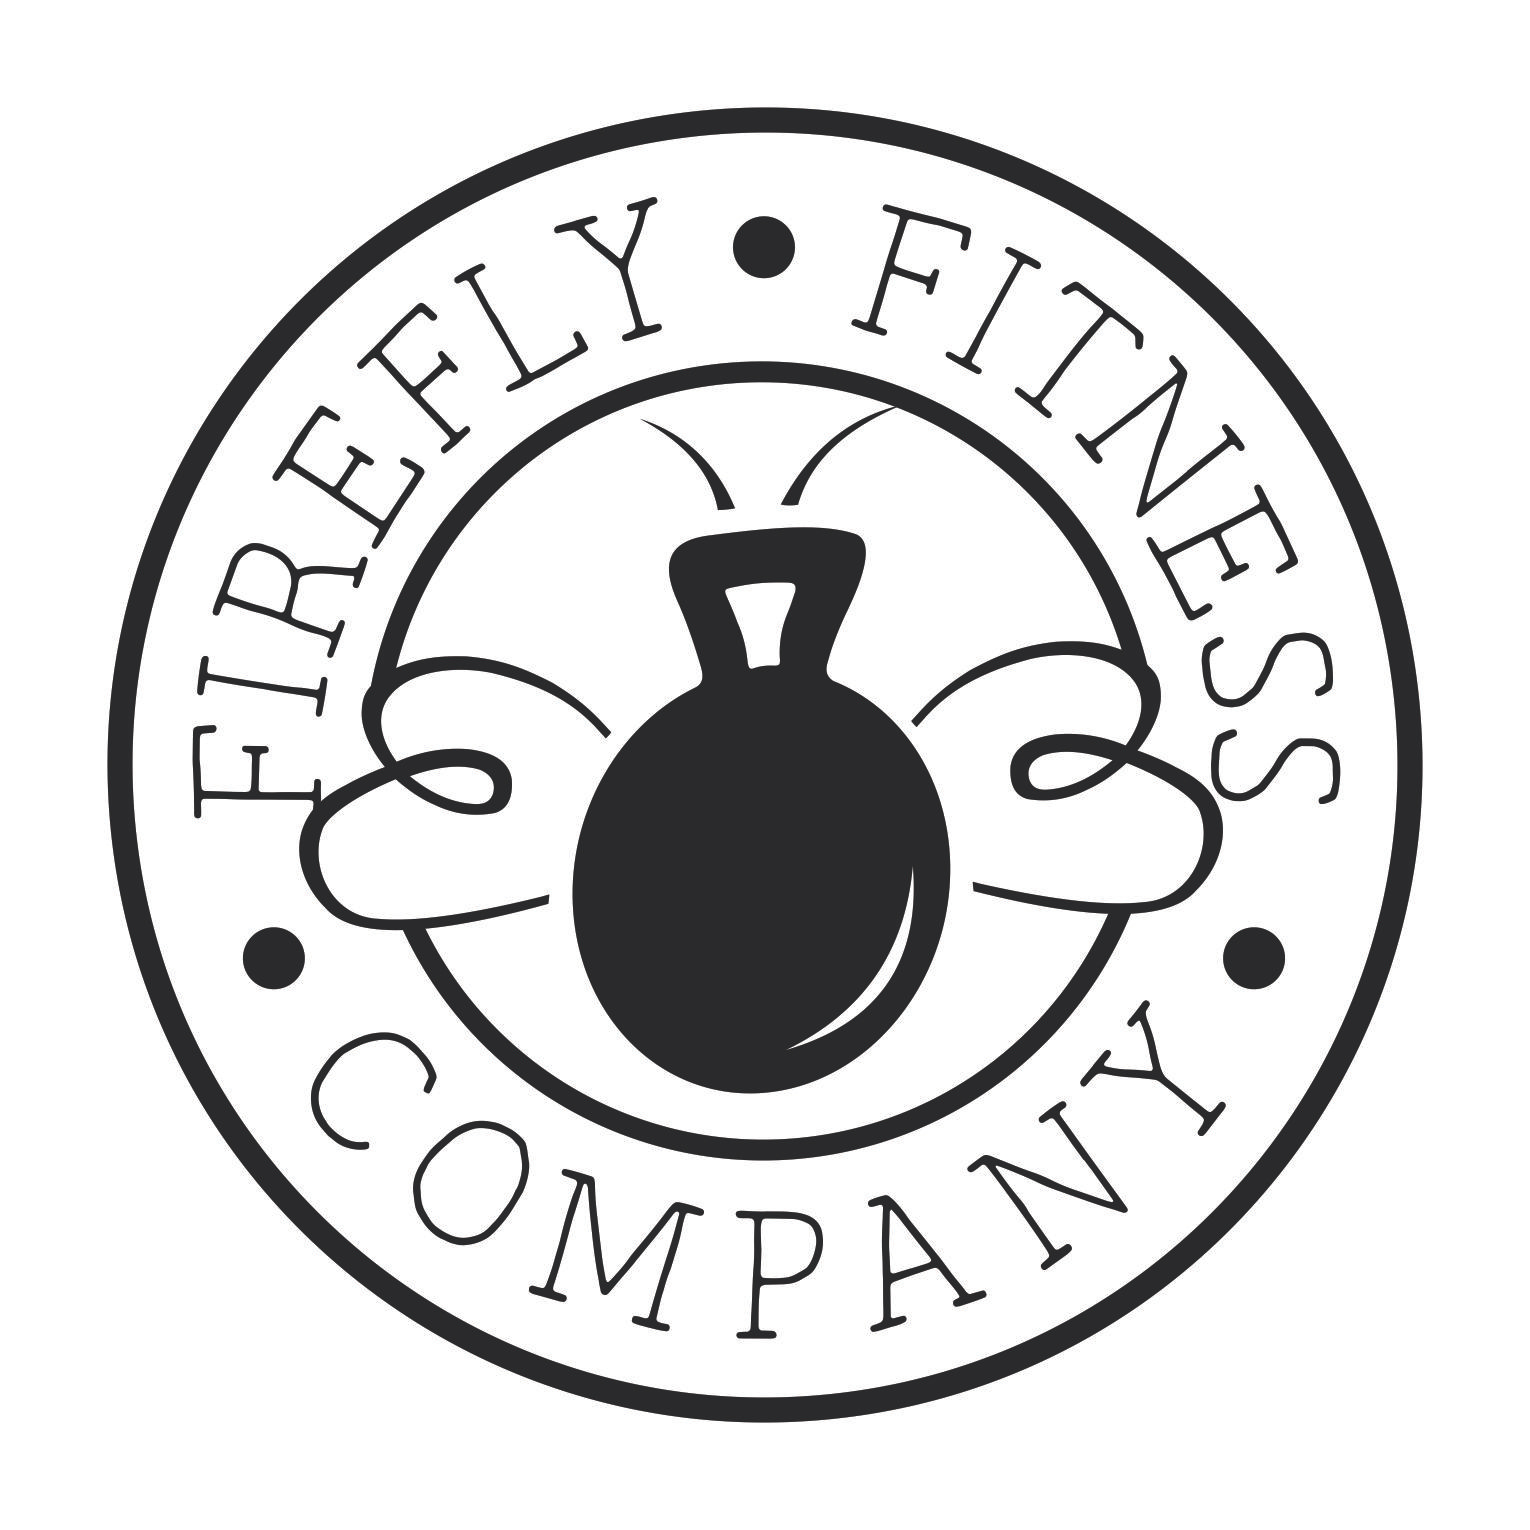 Firefly Fitness Co final logo - circle